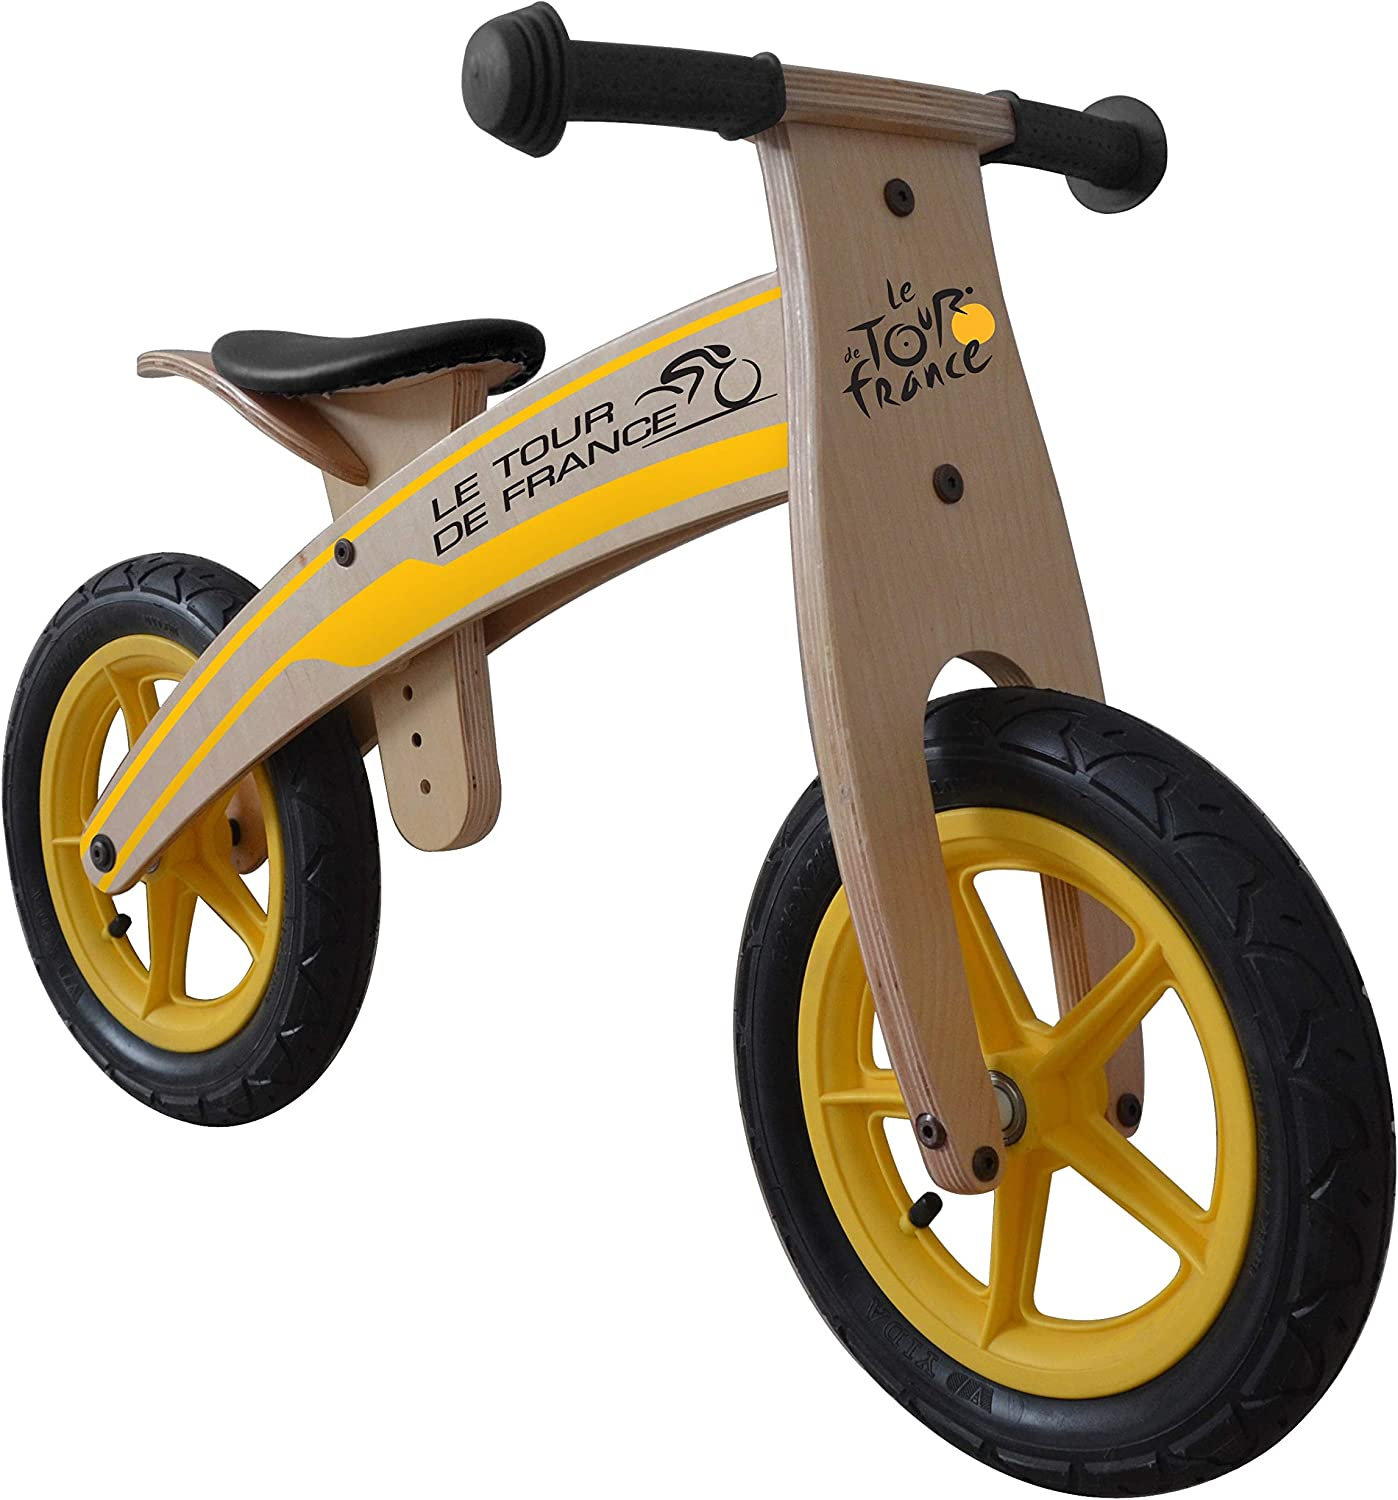 Tour de France Wood Running/Balance Bike, 12 inch Wheels, Kid's Bike, Wood Grain Color